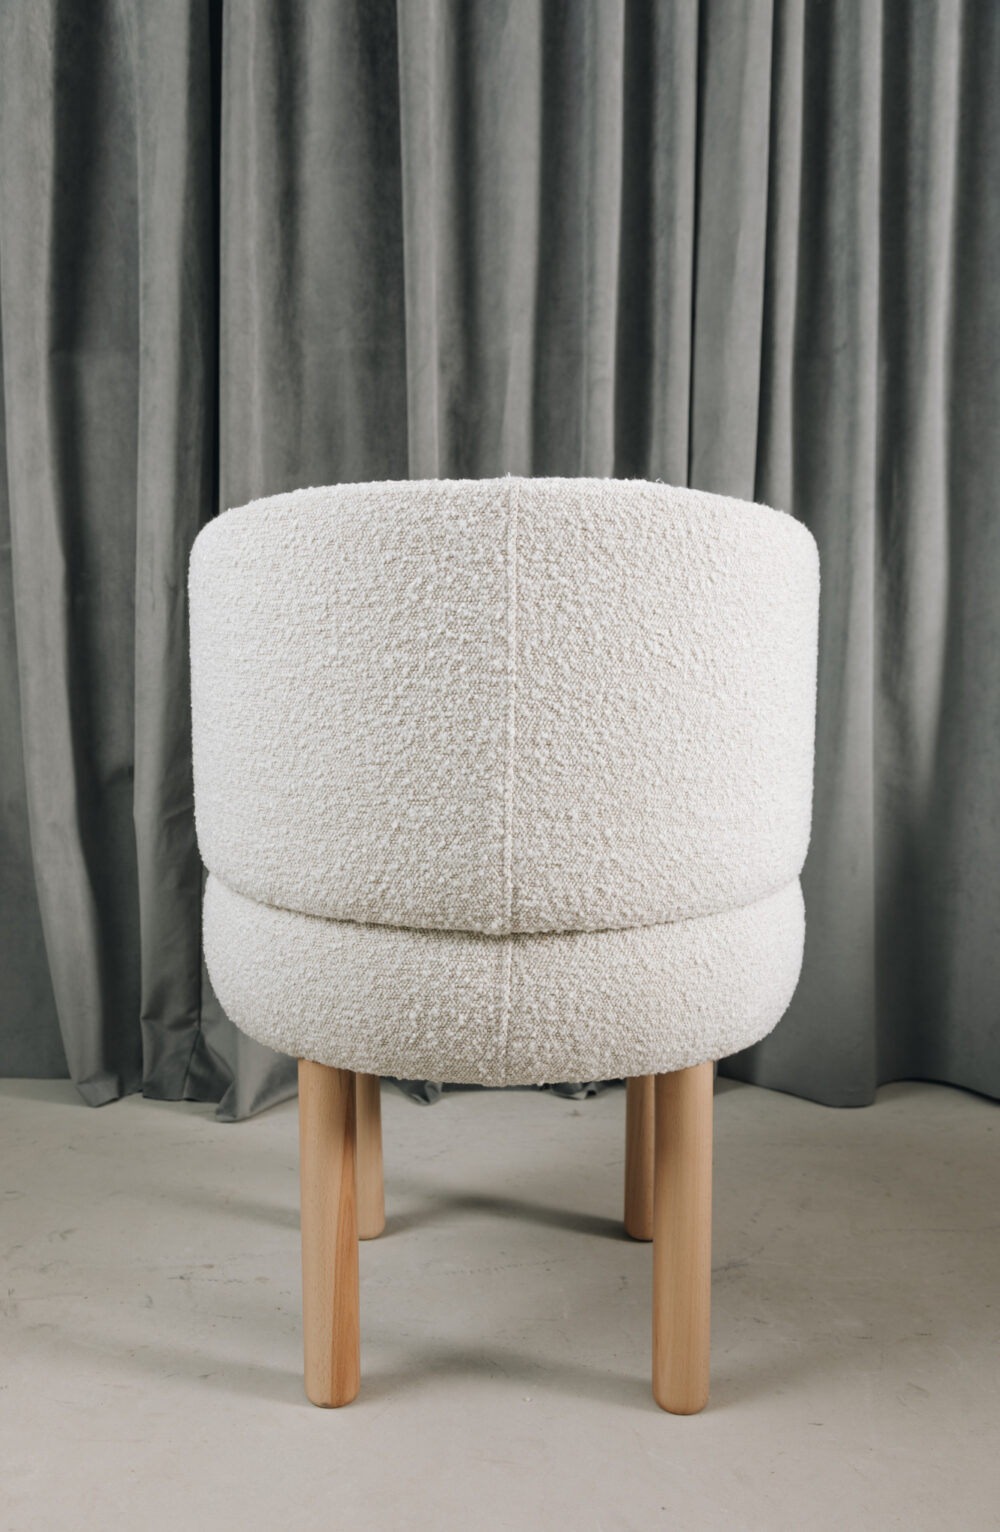 wooly_product (6)